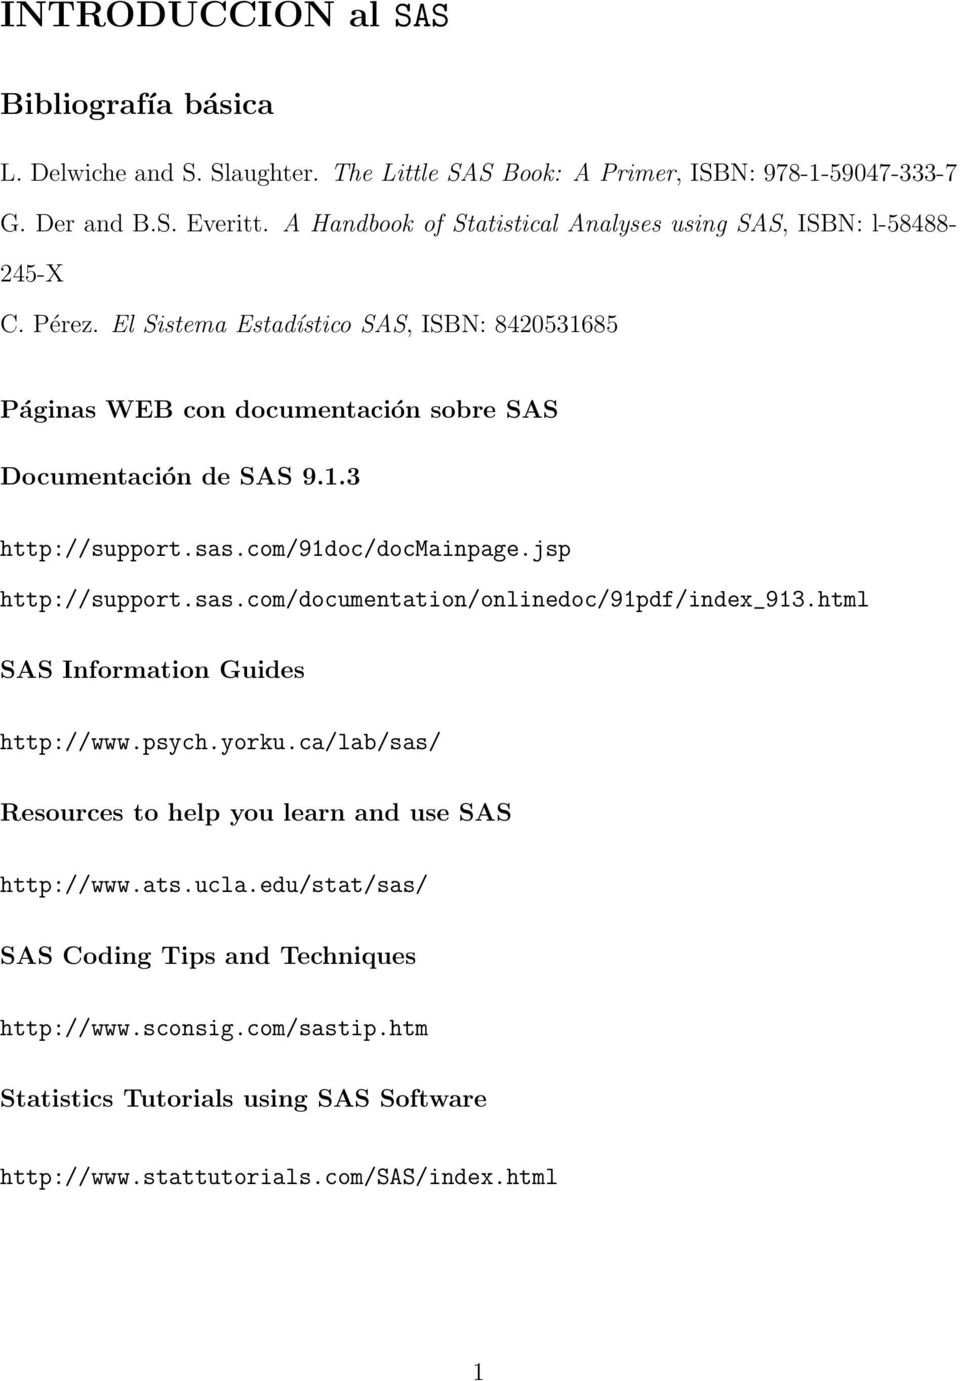 1.3 http://support.sas.com/91doc/docmainpage.jsp http://support.sas.com/documentation/onlinedoc/91pdf/index_913.html SAS Information Guides http://www.psych.yorku.